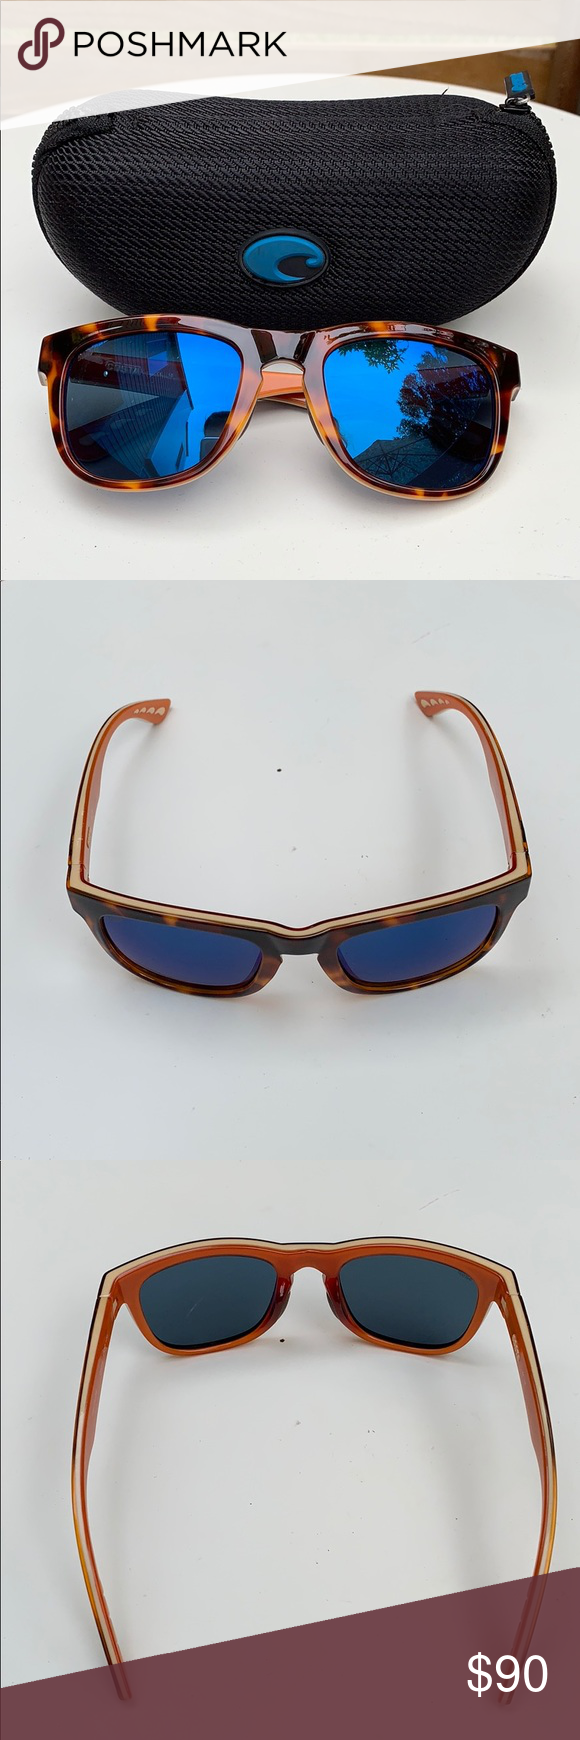 dc8eab3aa71 Great Condition Costa Copra Sunglasses Gently used Costa Polarized  sunglasses—superficial imperfections on lenses that